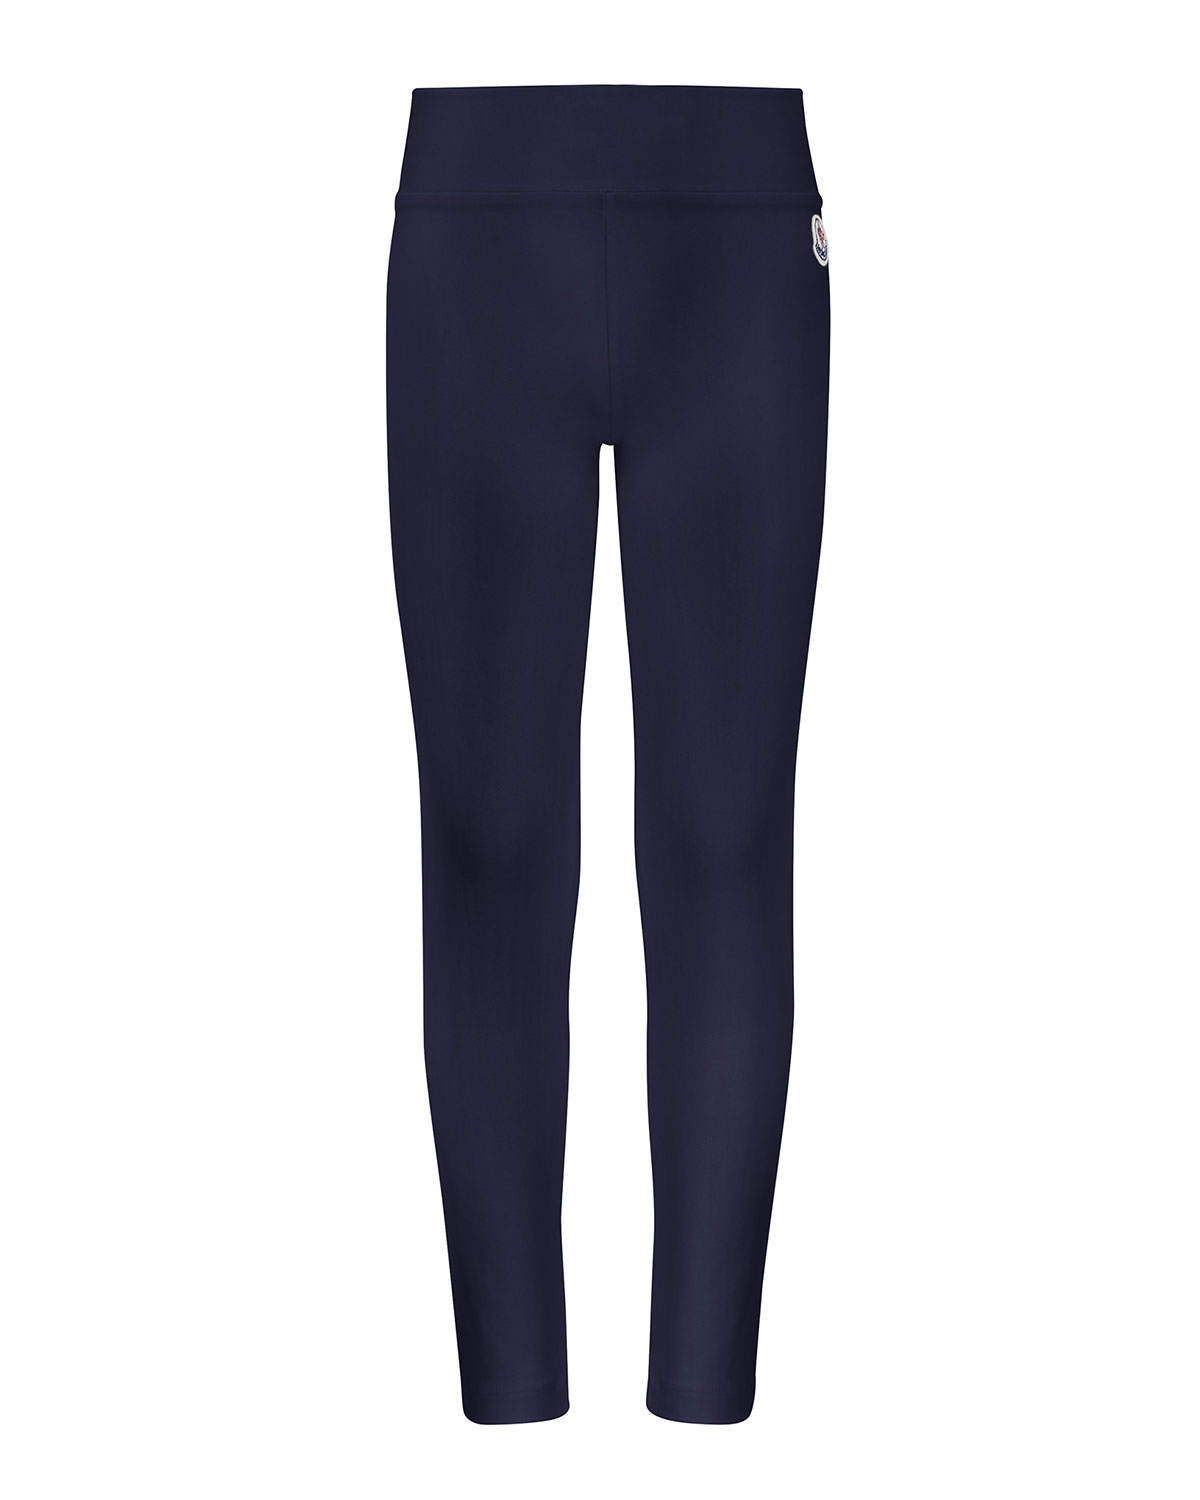 66738b5234646 Moncler Stretch Leggings, Size 4-6 | Neiman Marcus